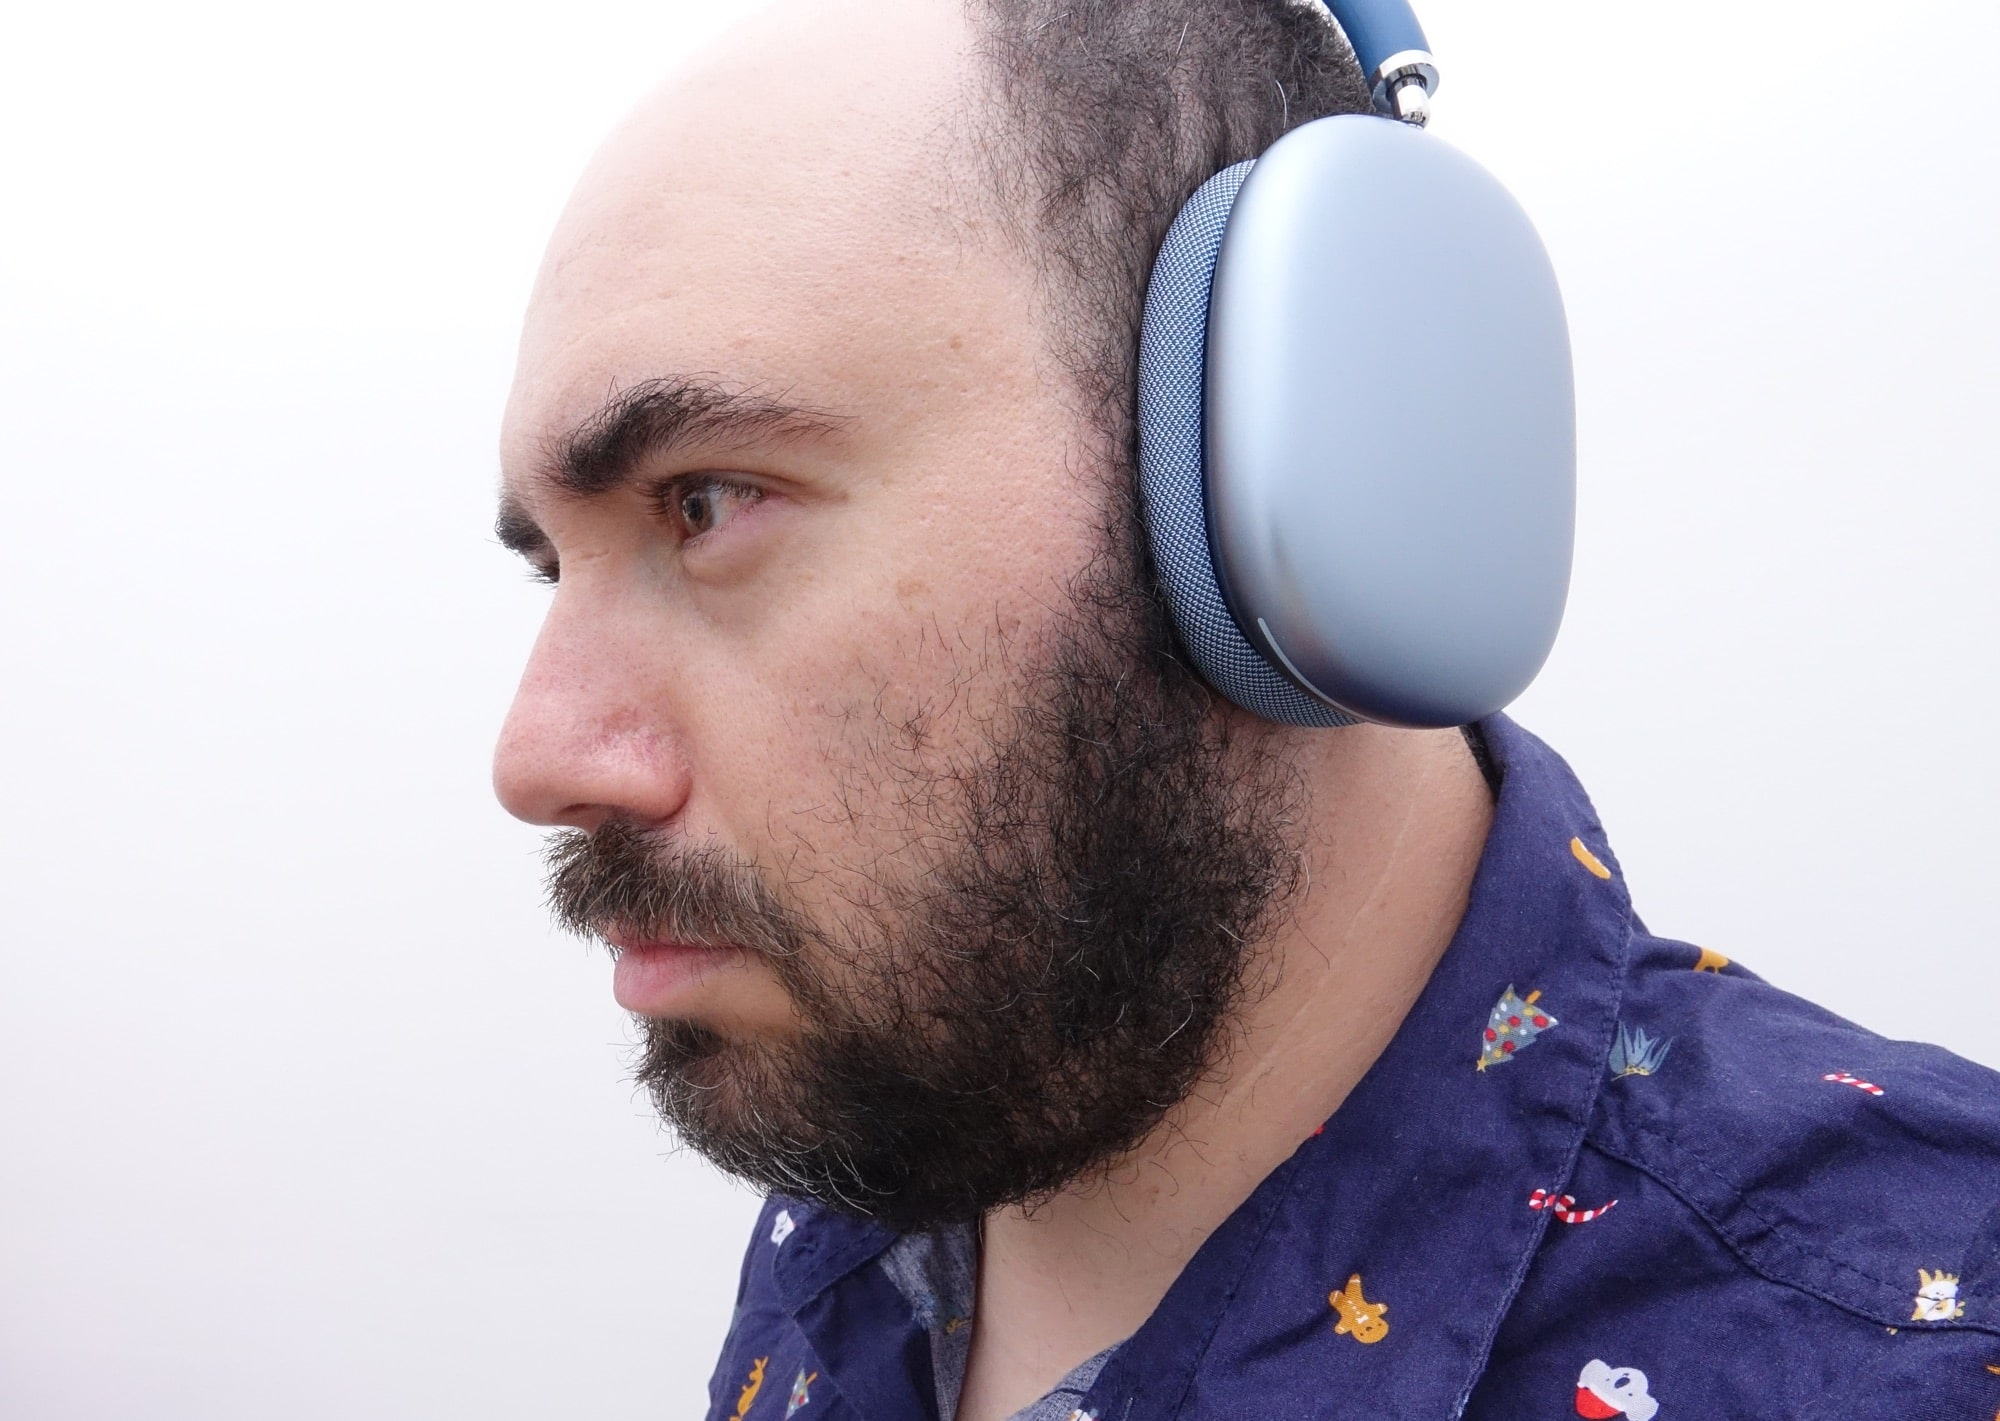 Wearing the AirPods Max